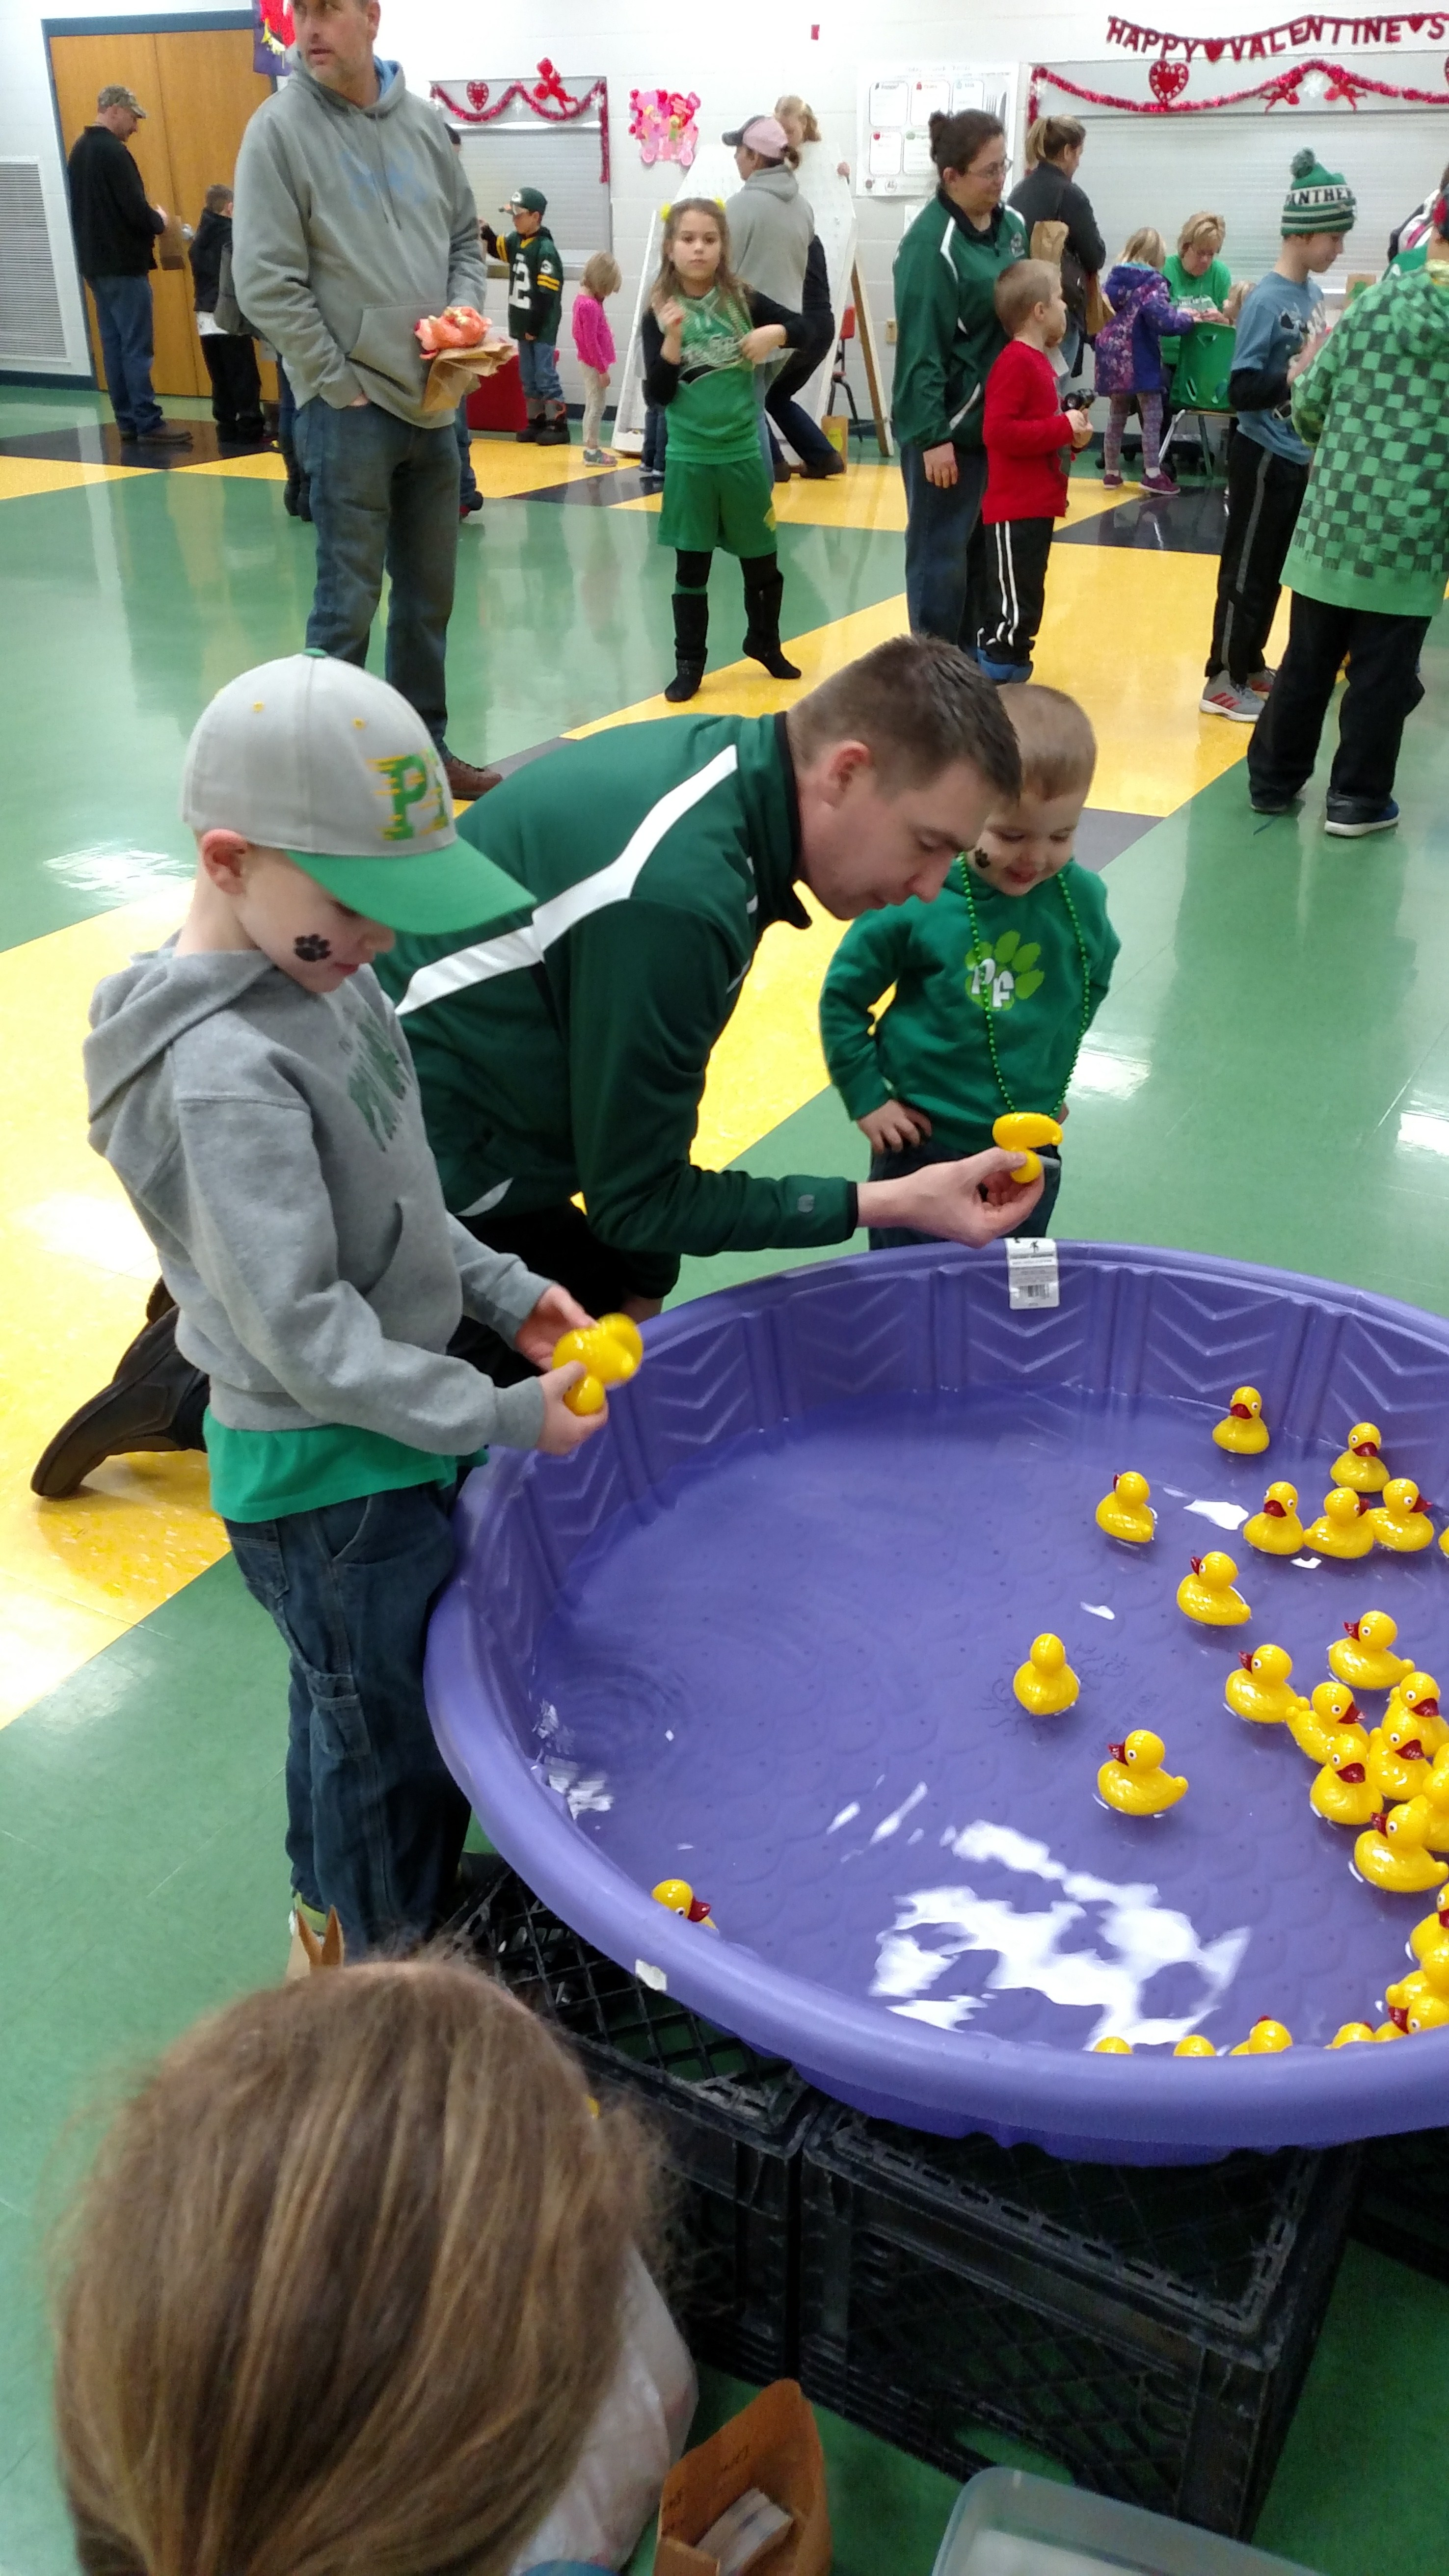 Students with rubber duckies in pool.